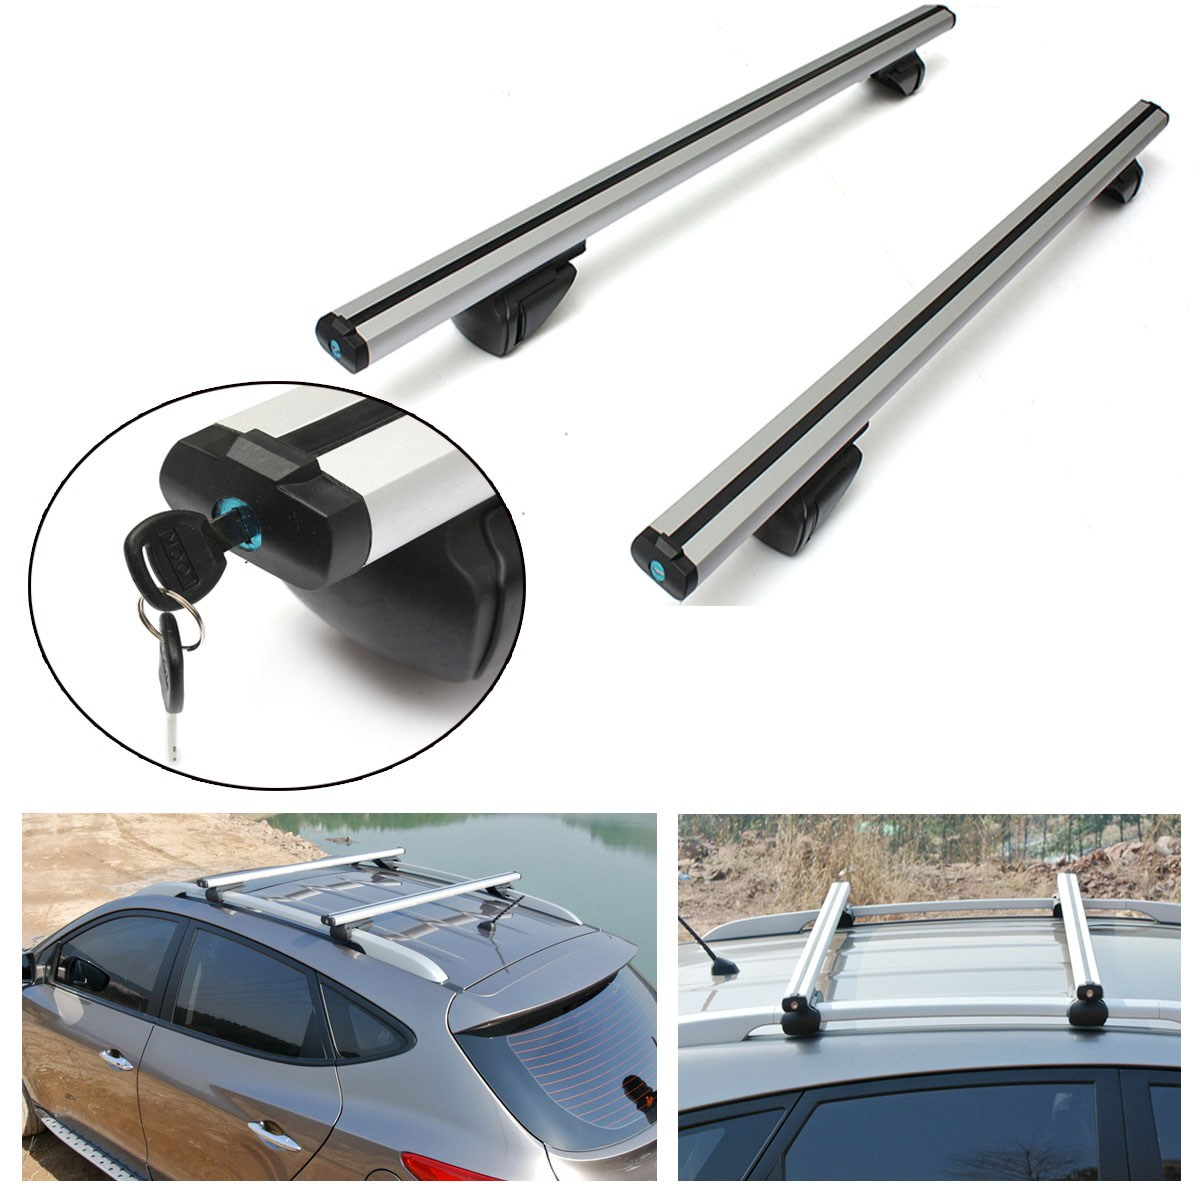 120cm Car Roof Rack Cross Bar Lock Anti-theft Rail Lockable  Adjustable Aluminum Cargo Luggage Carrier Max Load 220Lb teaegg top roof rack side rails luggage carrier for hyundai tucson ix35 2010 2014